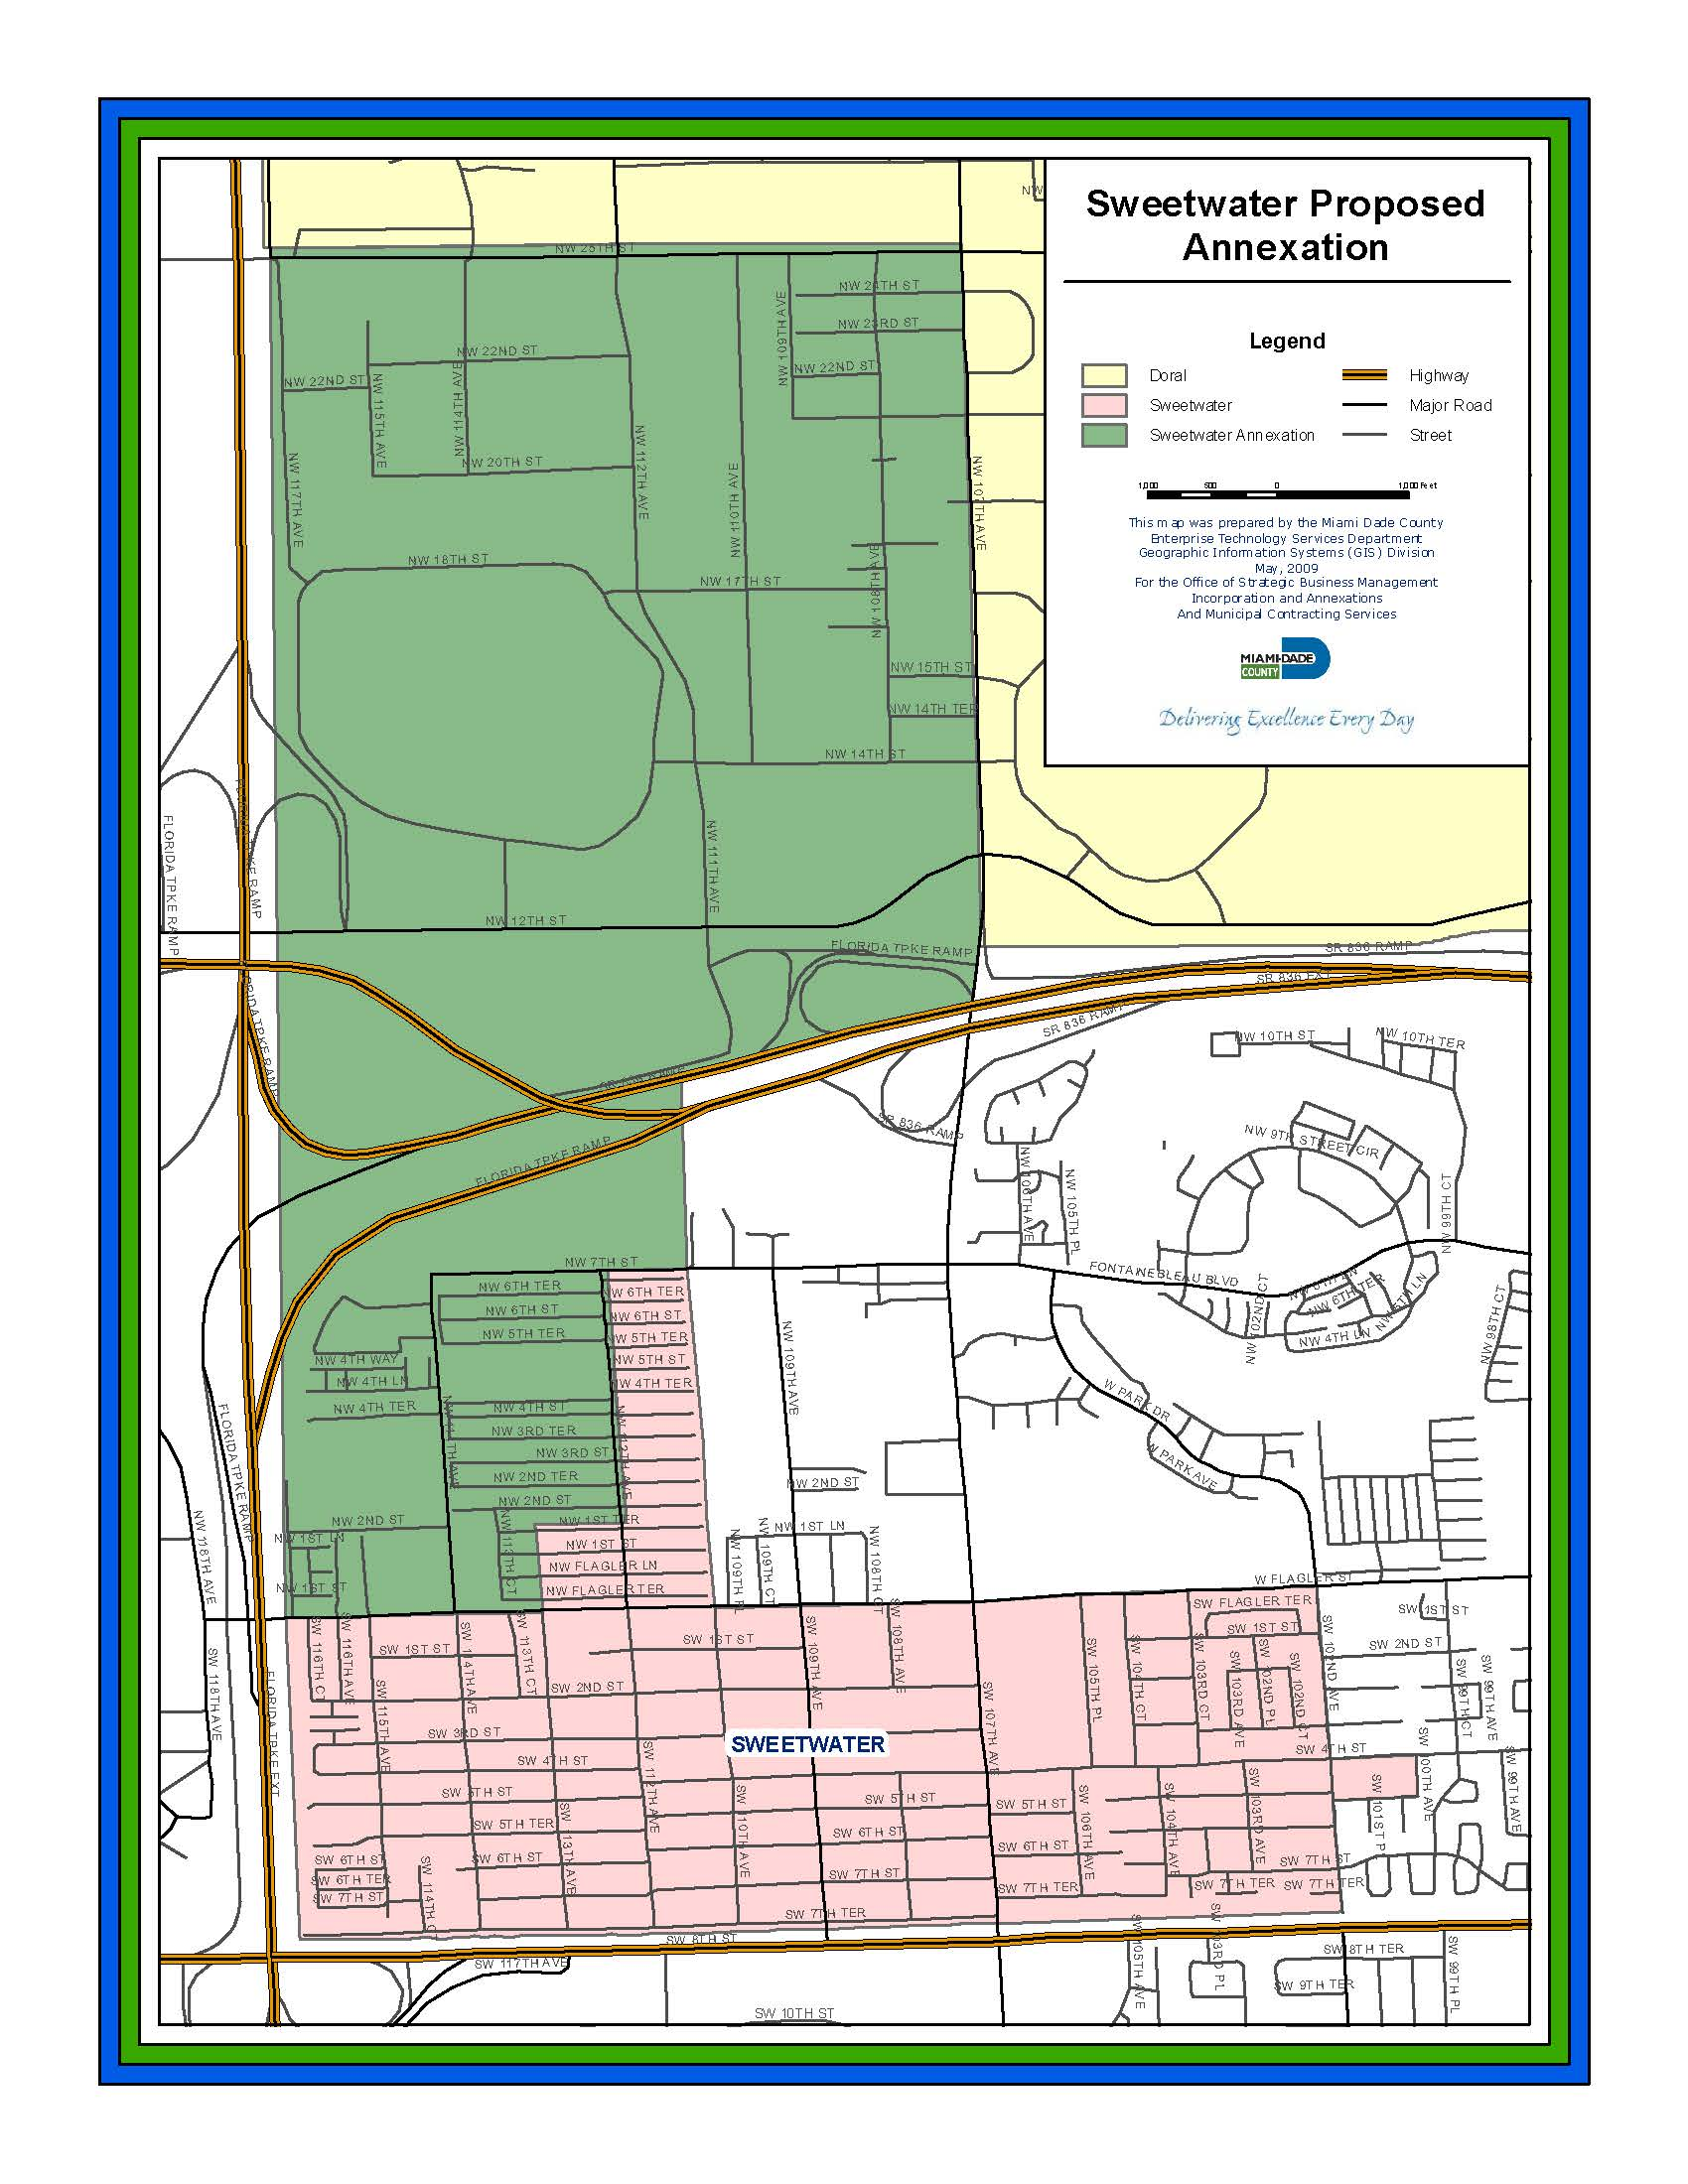 City of Sweetwater Florida Annexation